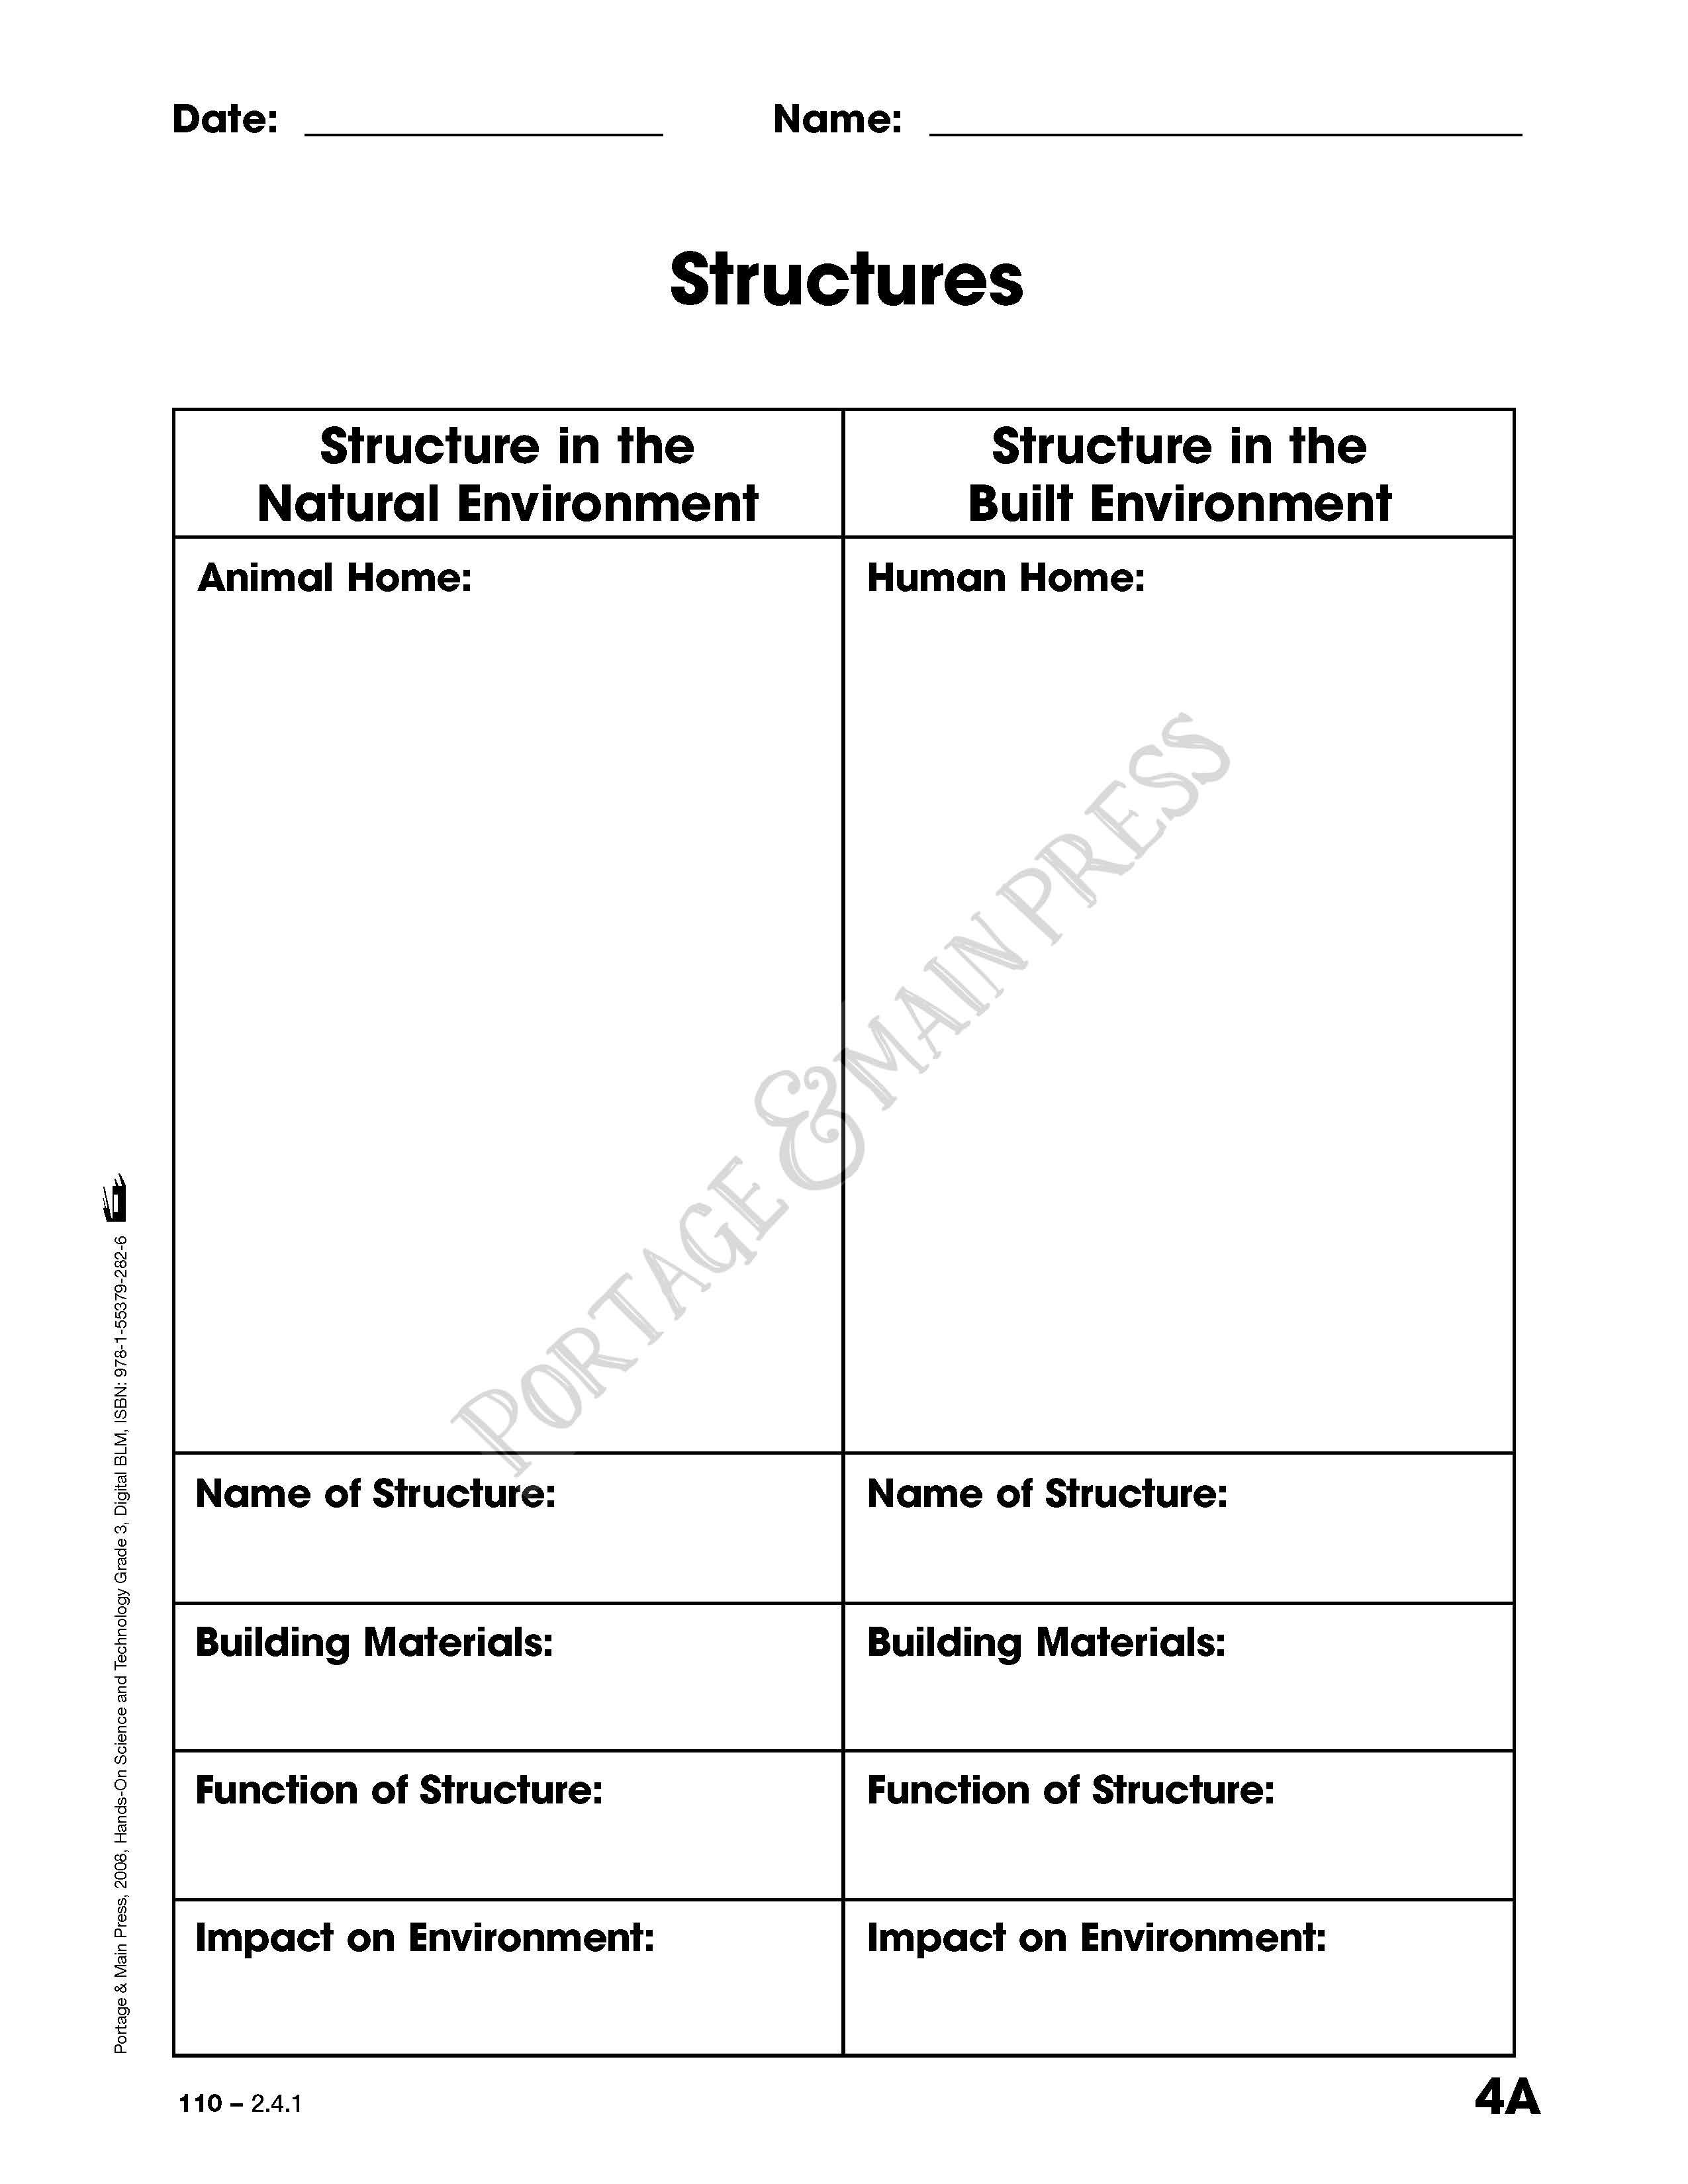 Grade 3 Science Structures Activity Sheet